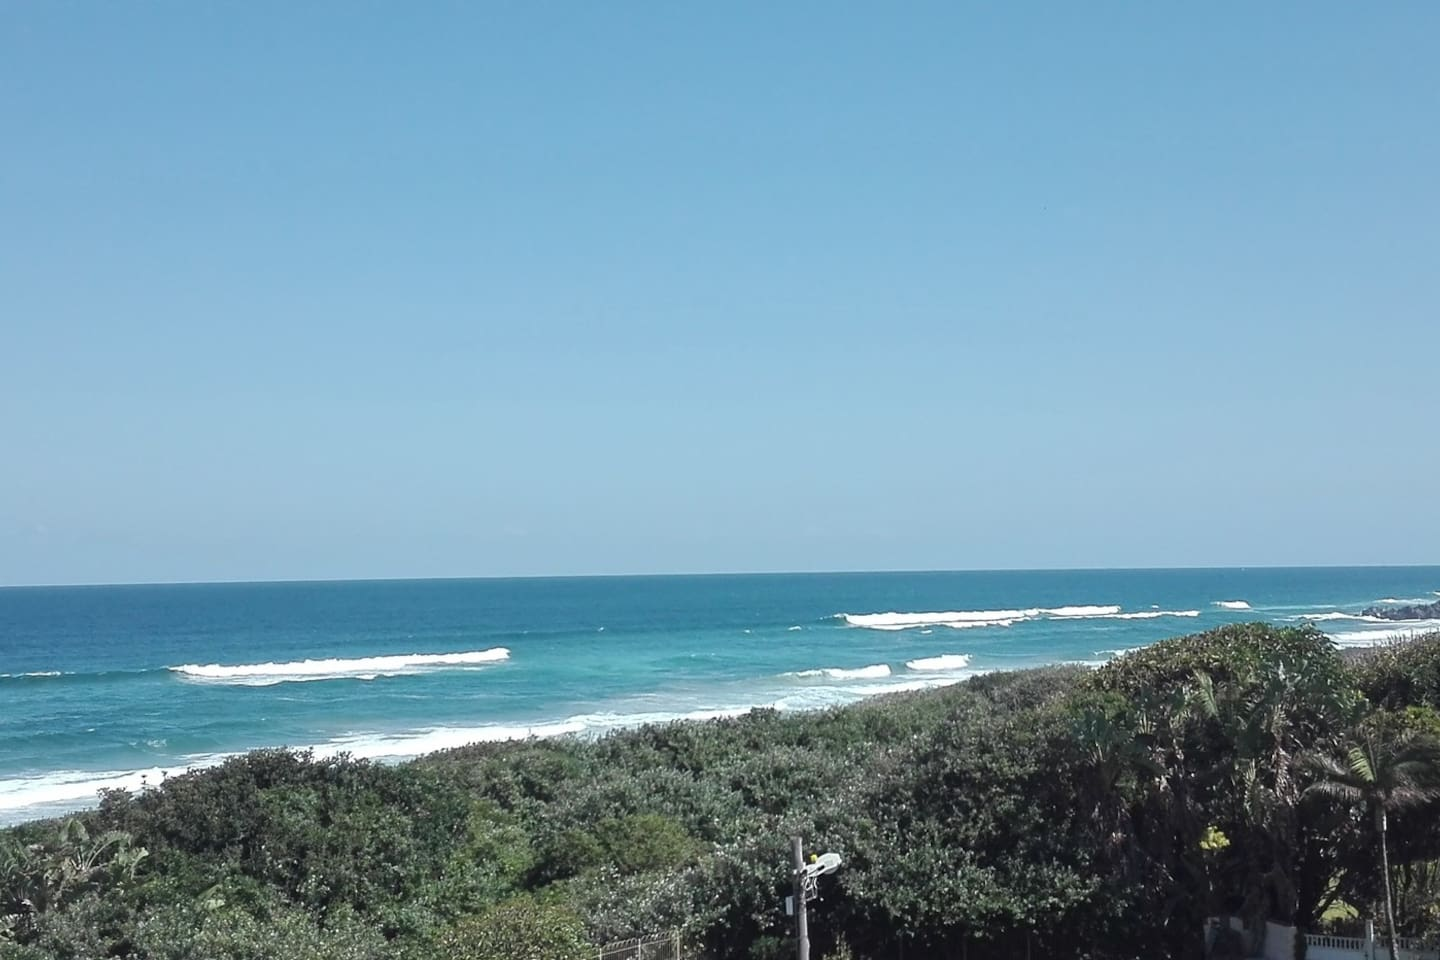 Breath taking seaviews --- relax with the sound of the surf. View over Winklespruit beach.